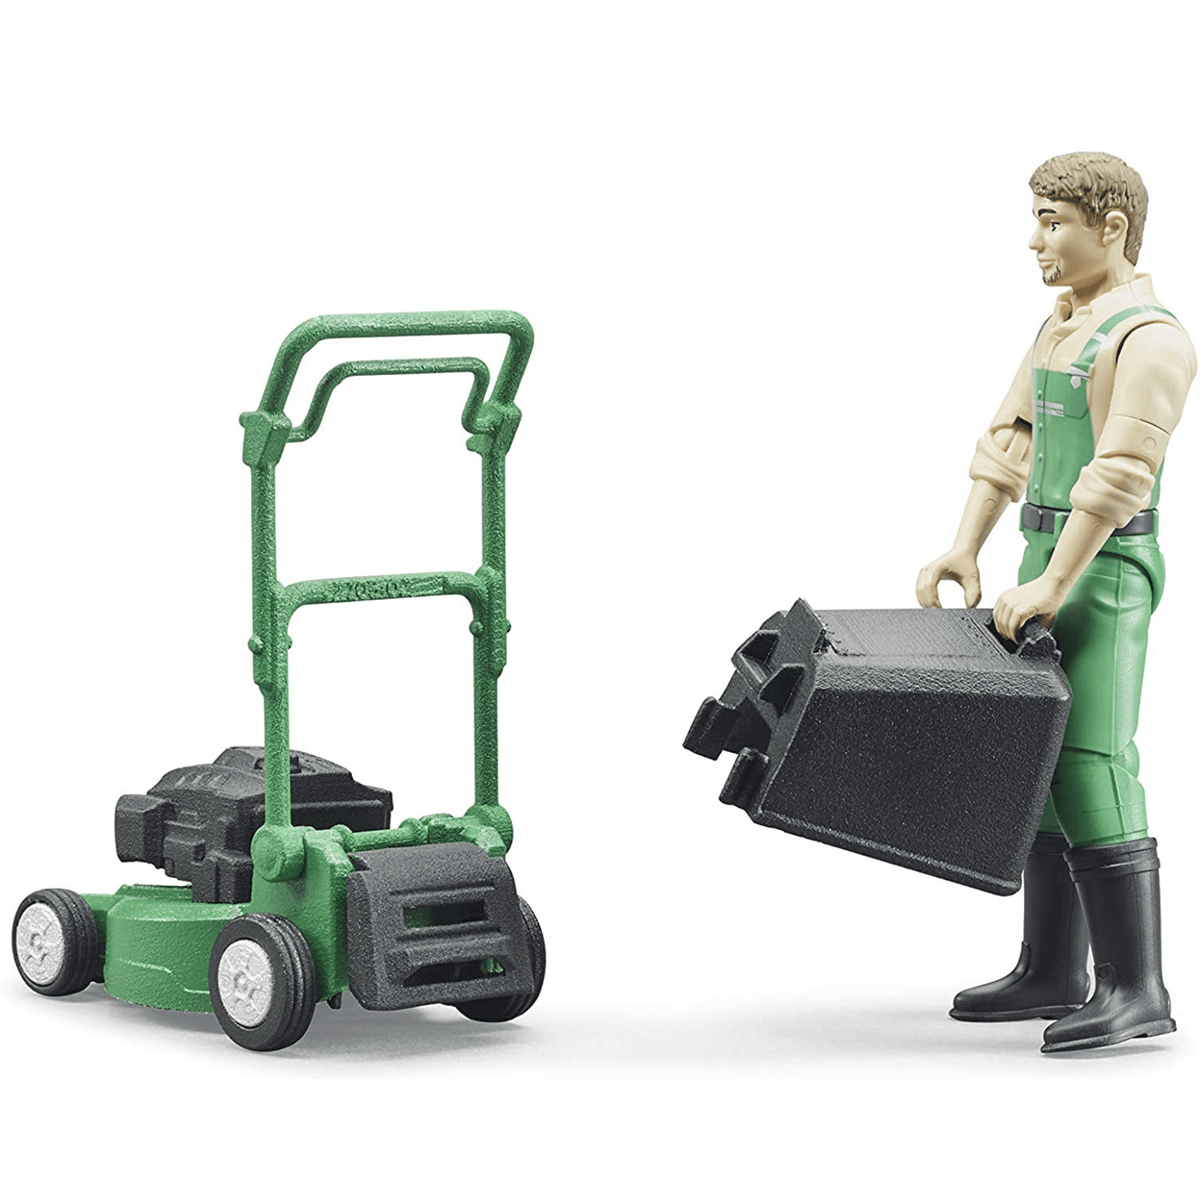 Bruder Gardener and Mower Set